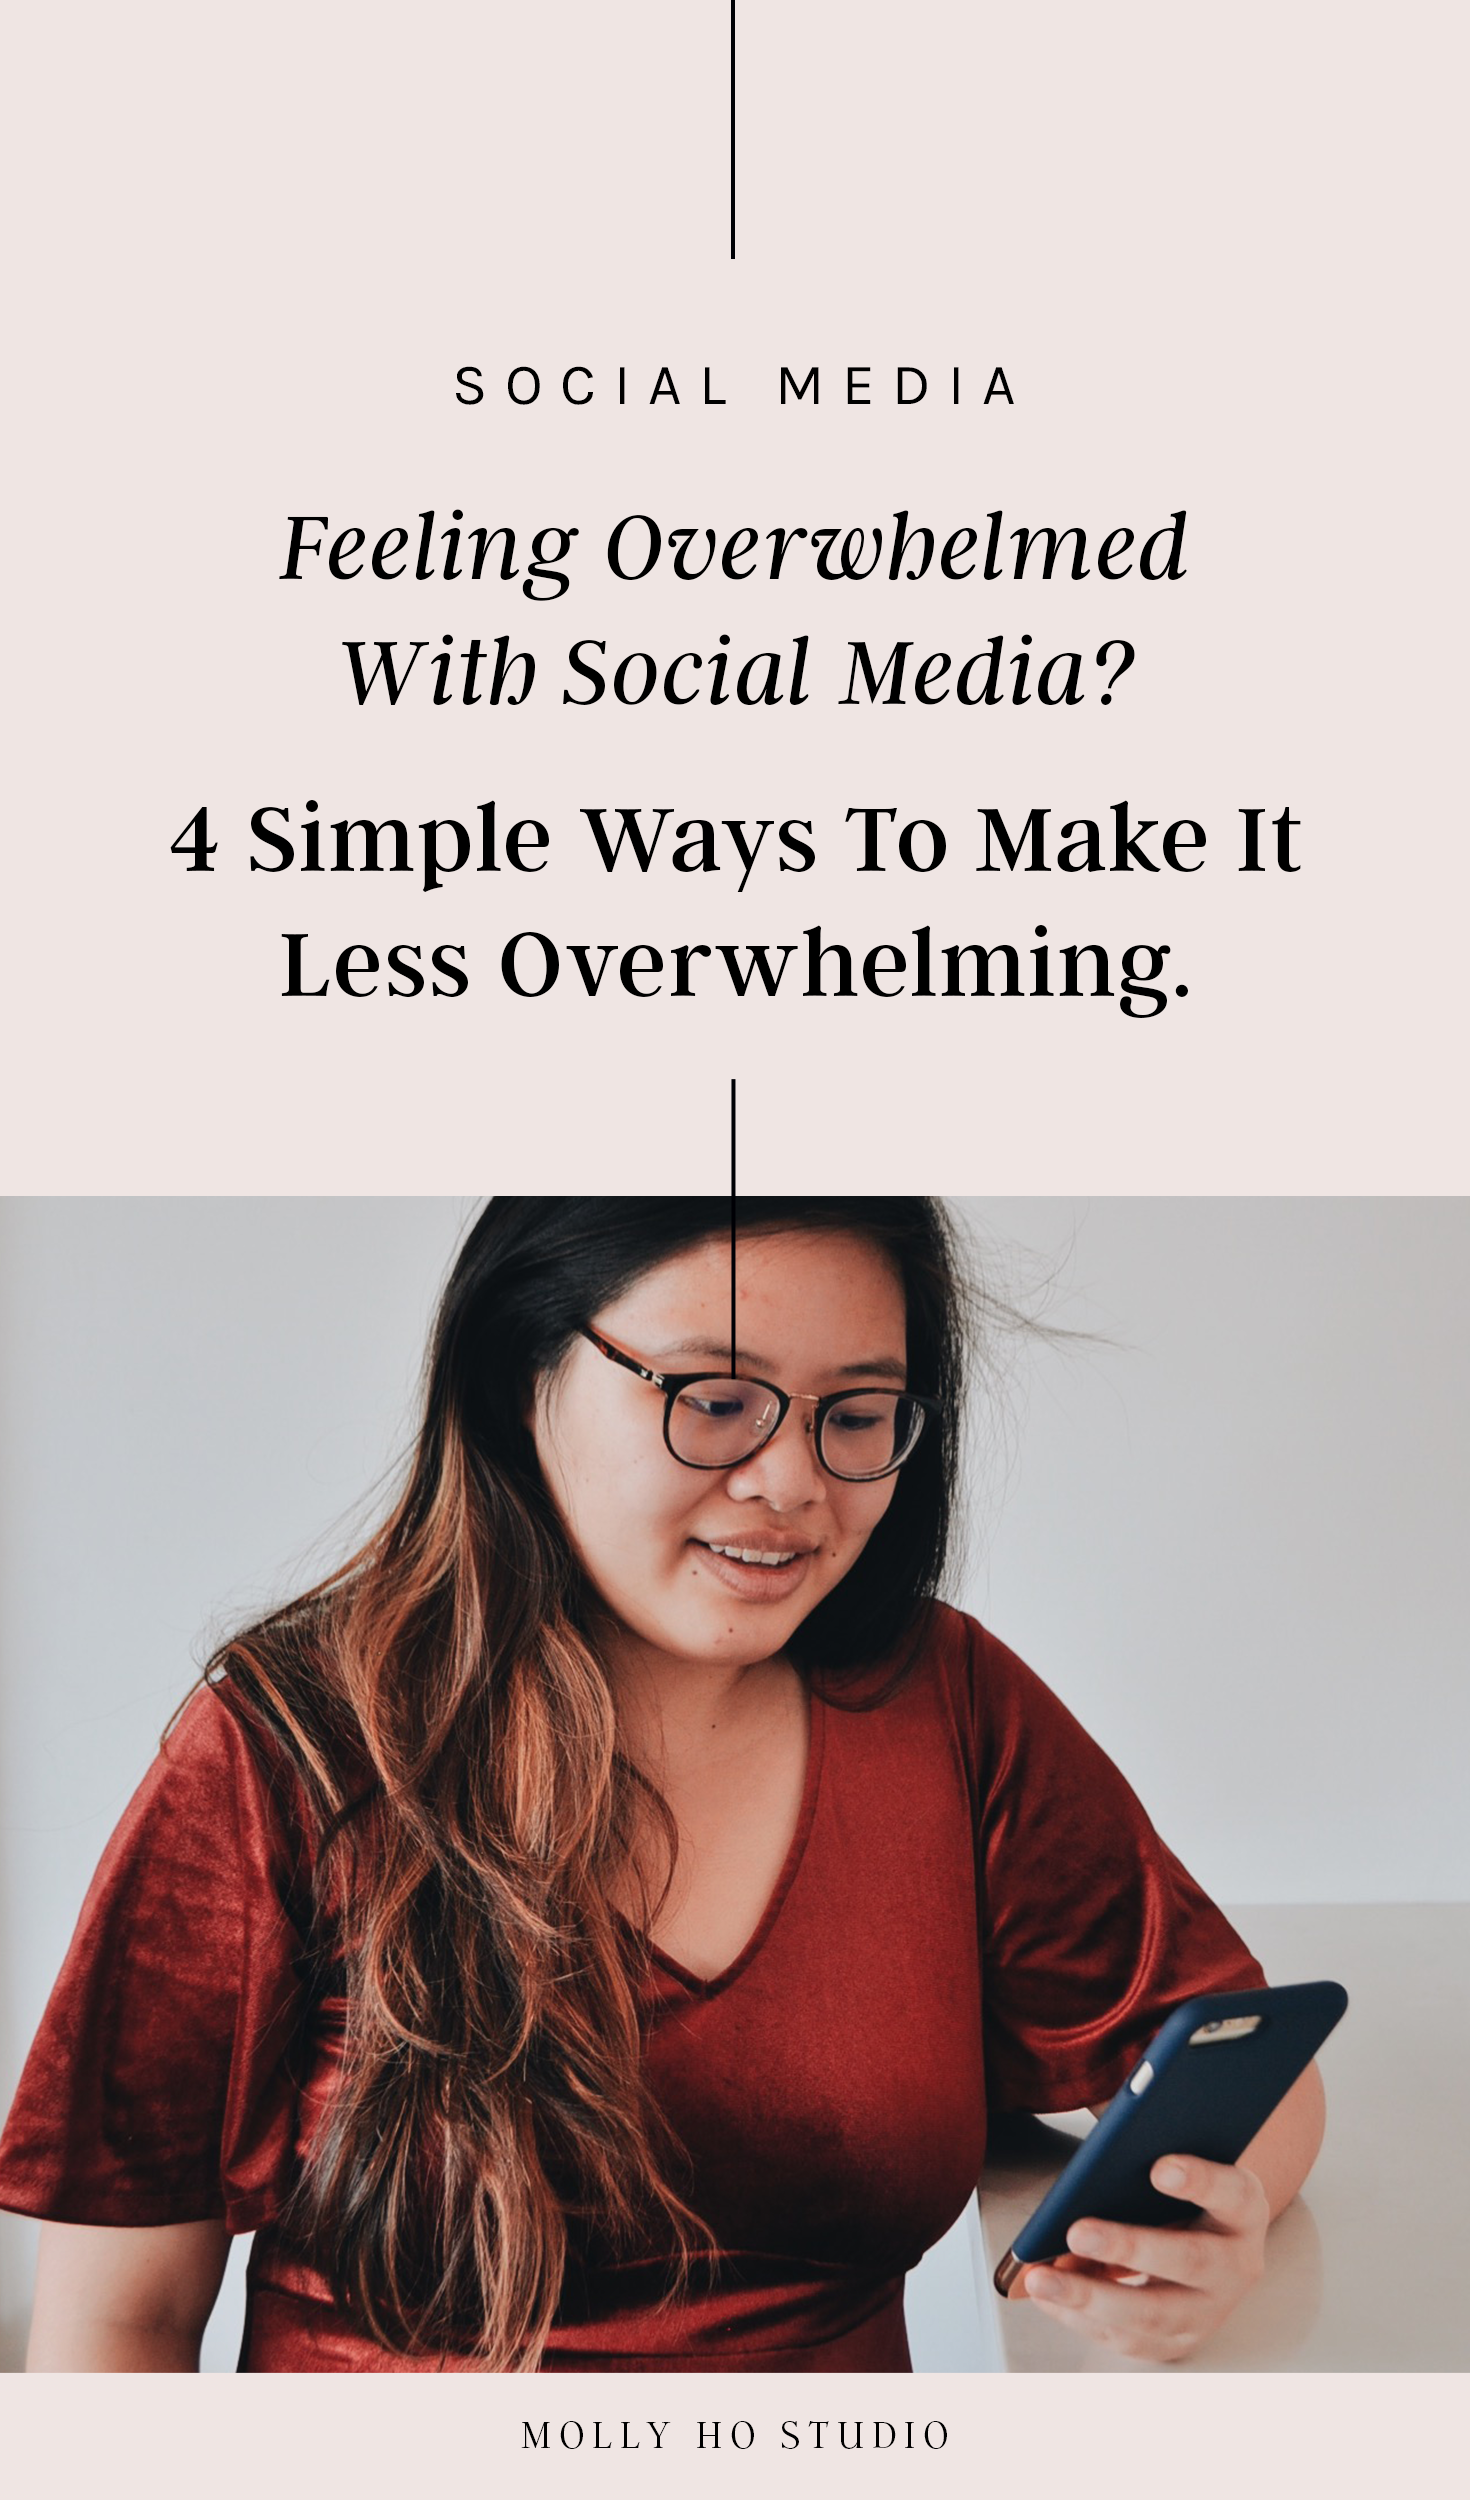 Feeling Overwhelmed With Social Media? 4 Simple Ways To Make It Less Overwhelming | Social Media Marketing Tips For Small Businesses and Personal Brands | How To Plan and Schedule Your Instagram In Advance | How To Use Social Media To Grow Your Photography Business | Ways To Make Social Media Easier and More Efficient | Personal Branding For Creative Entrepreneurs | Molly Ho Studio